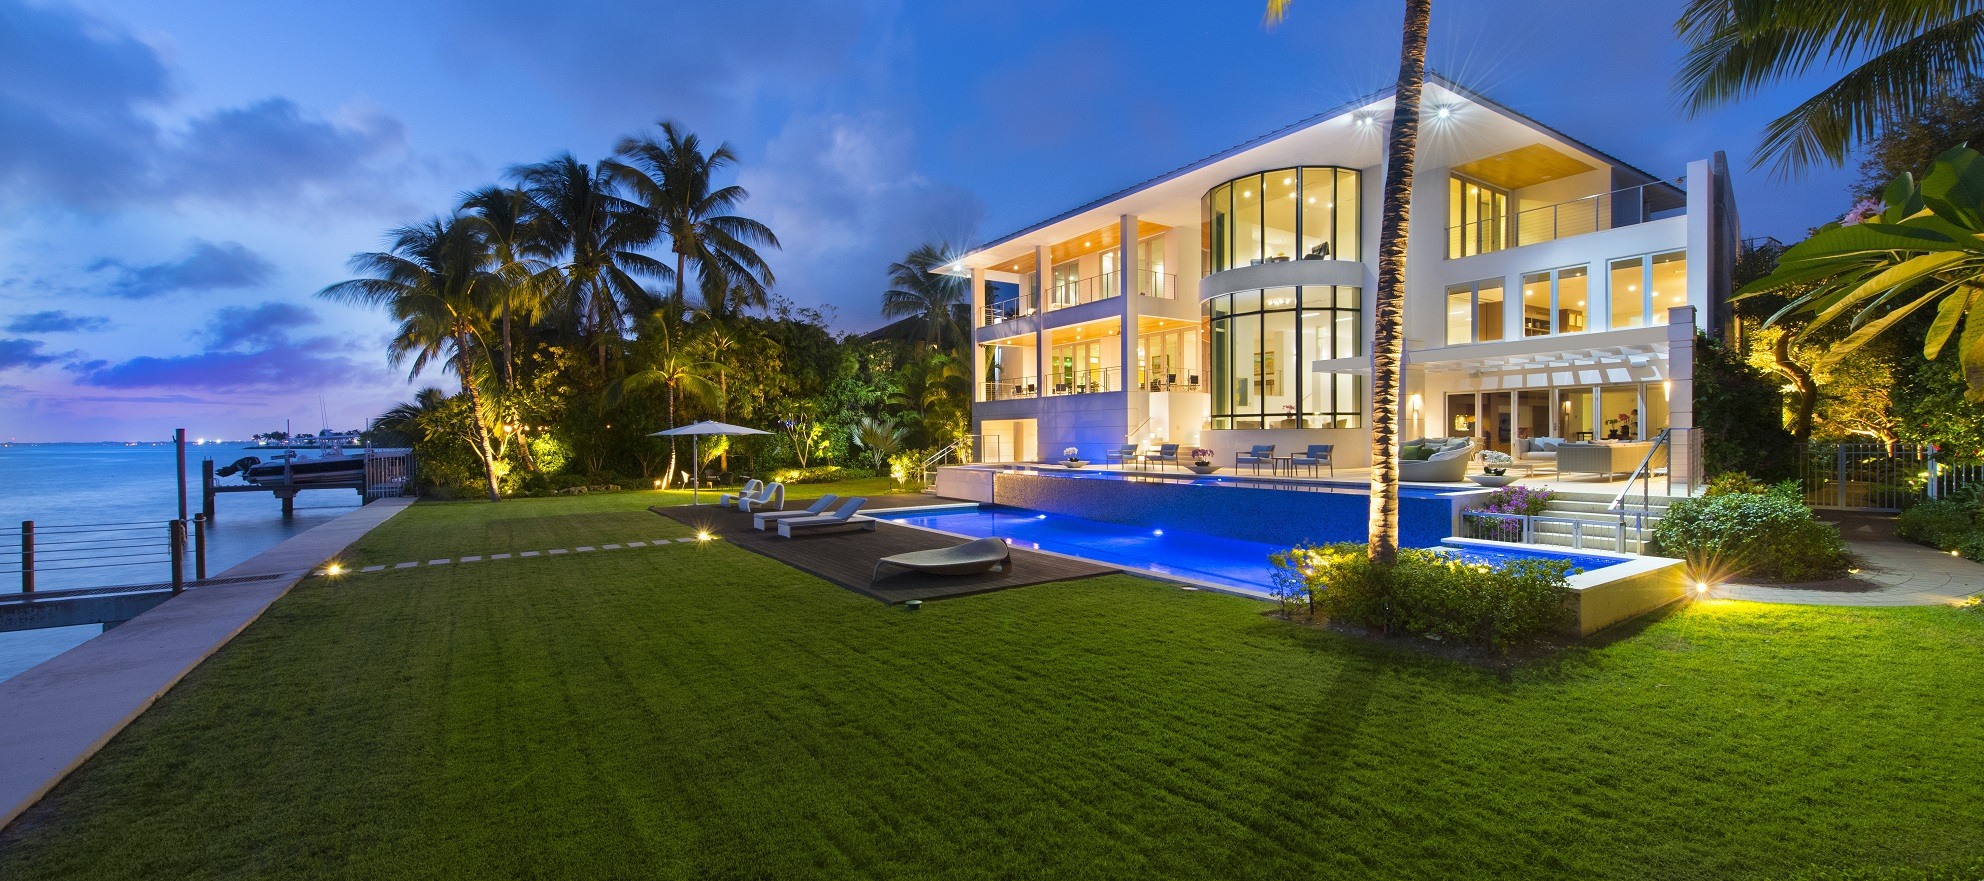 Luxury listing: three-story custom-built Key Biscayne home